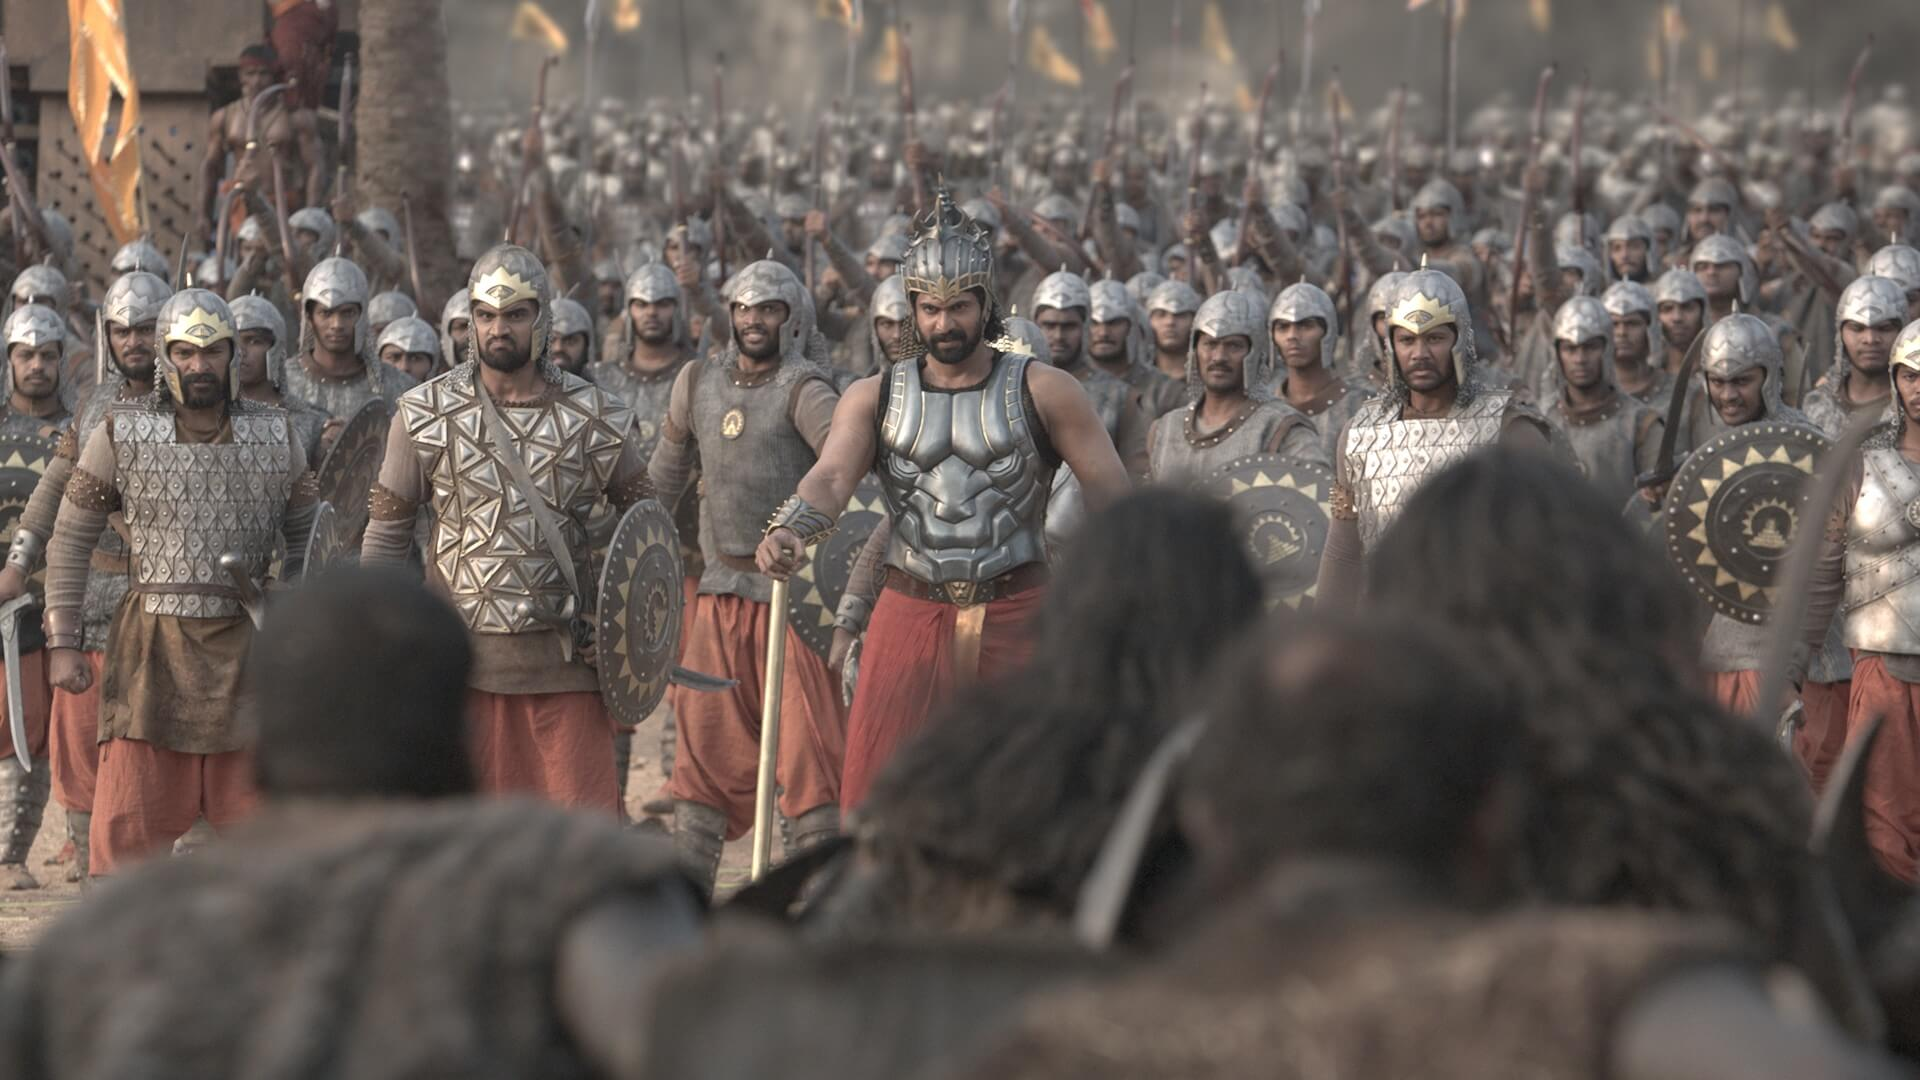 baahubali vfx, compositing, animation, 3d, visual effects